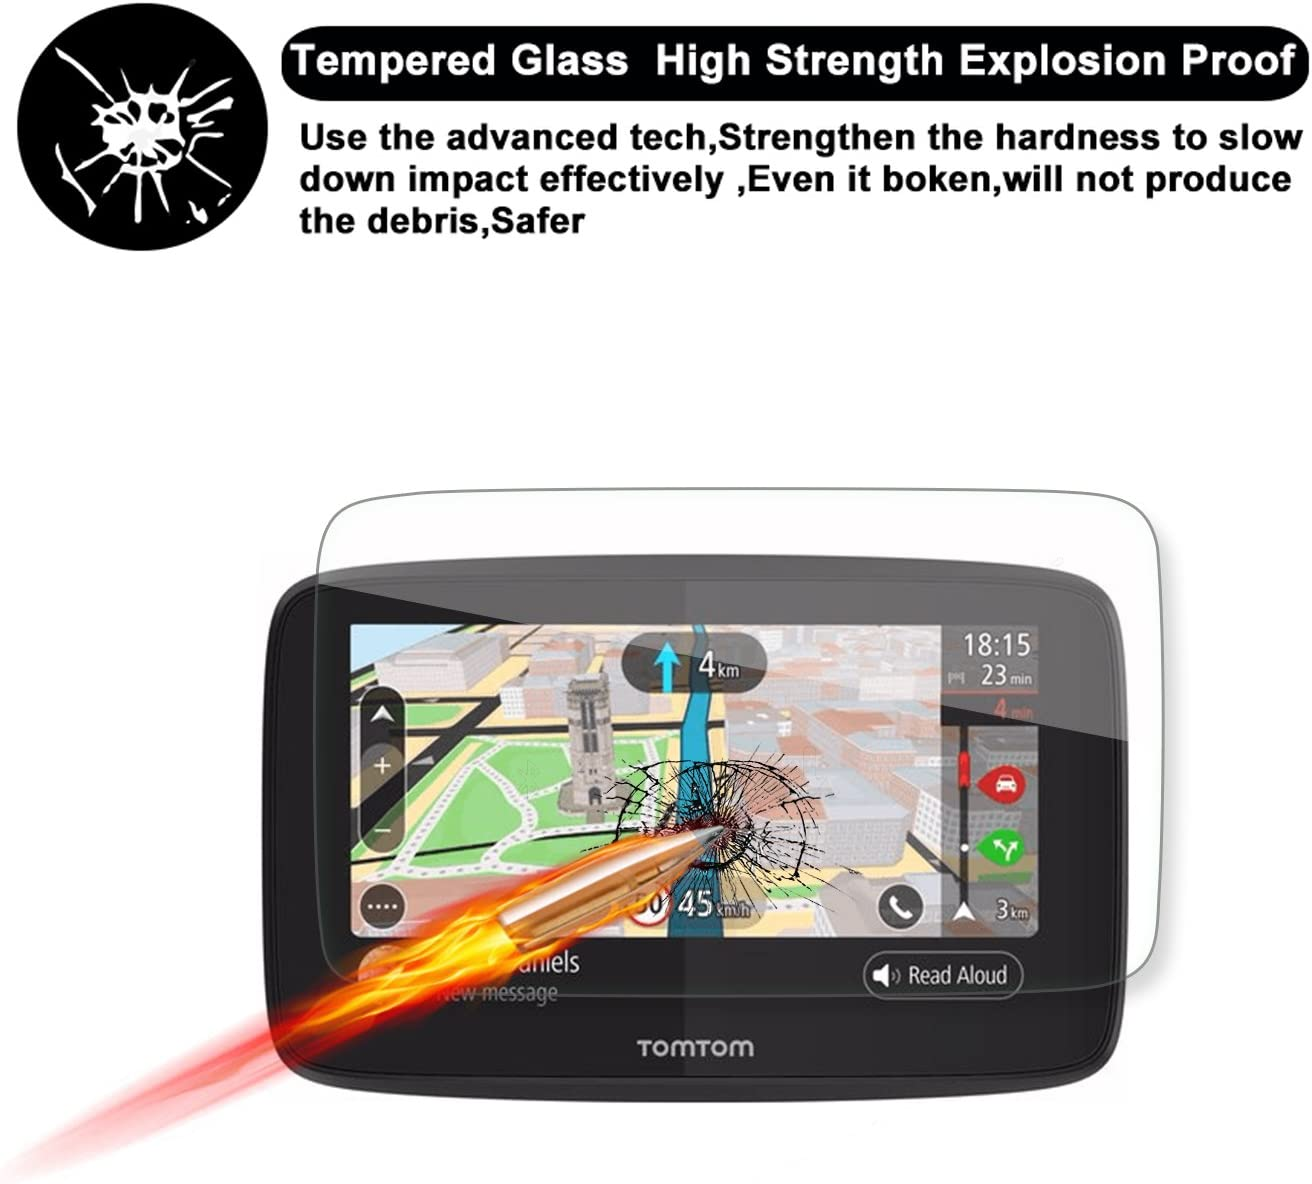 R RUIYA HD Clear Tempered Glass Screen Guard Shield Scratch-Resistant Ultra HD Extreme Clarity Special for Tomtom GO 520 5200 GPS 5-Inch Display Navigation Screen Protector